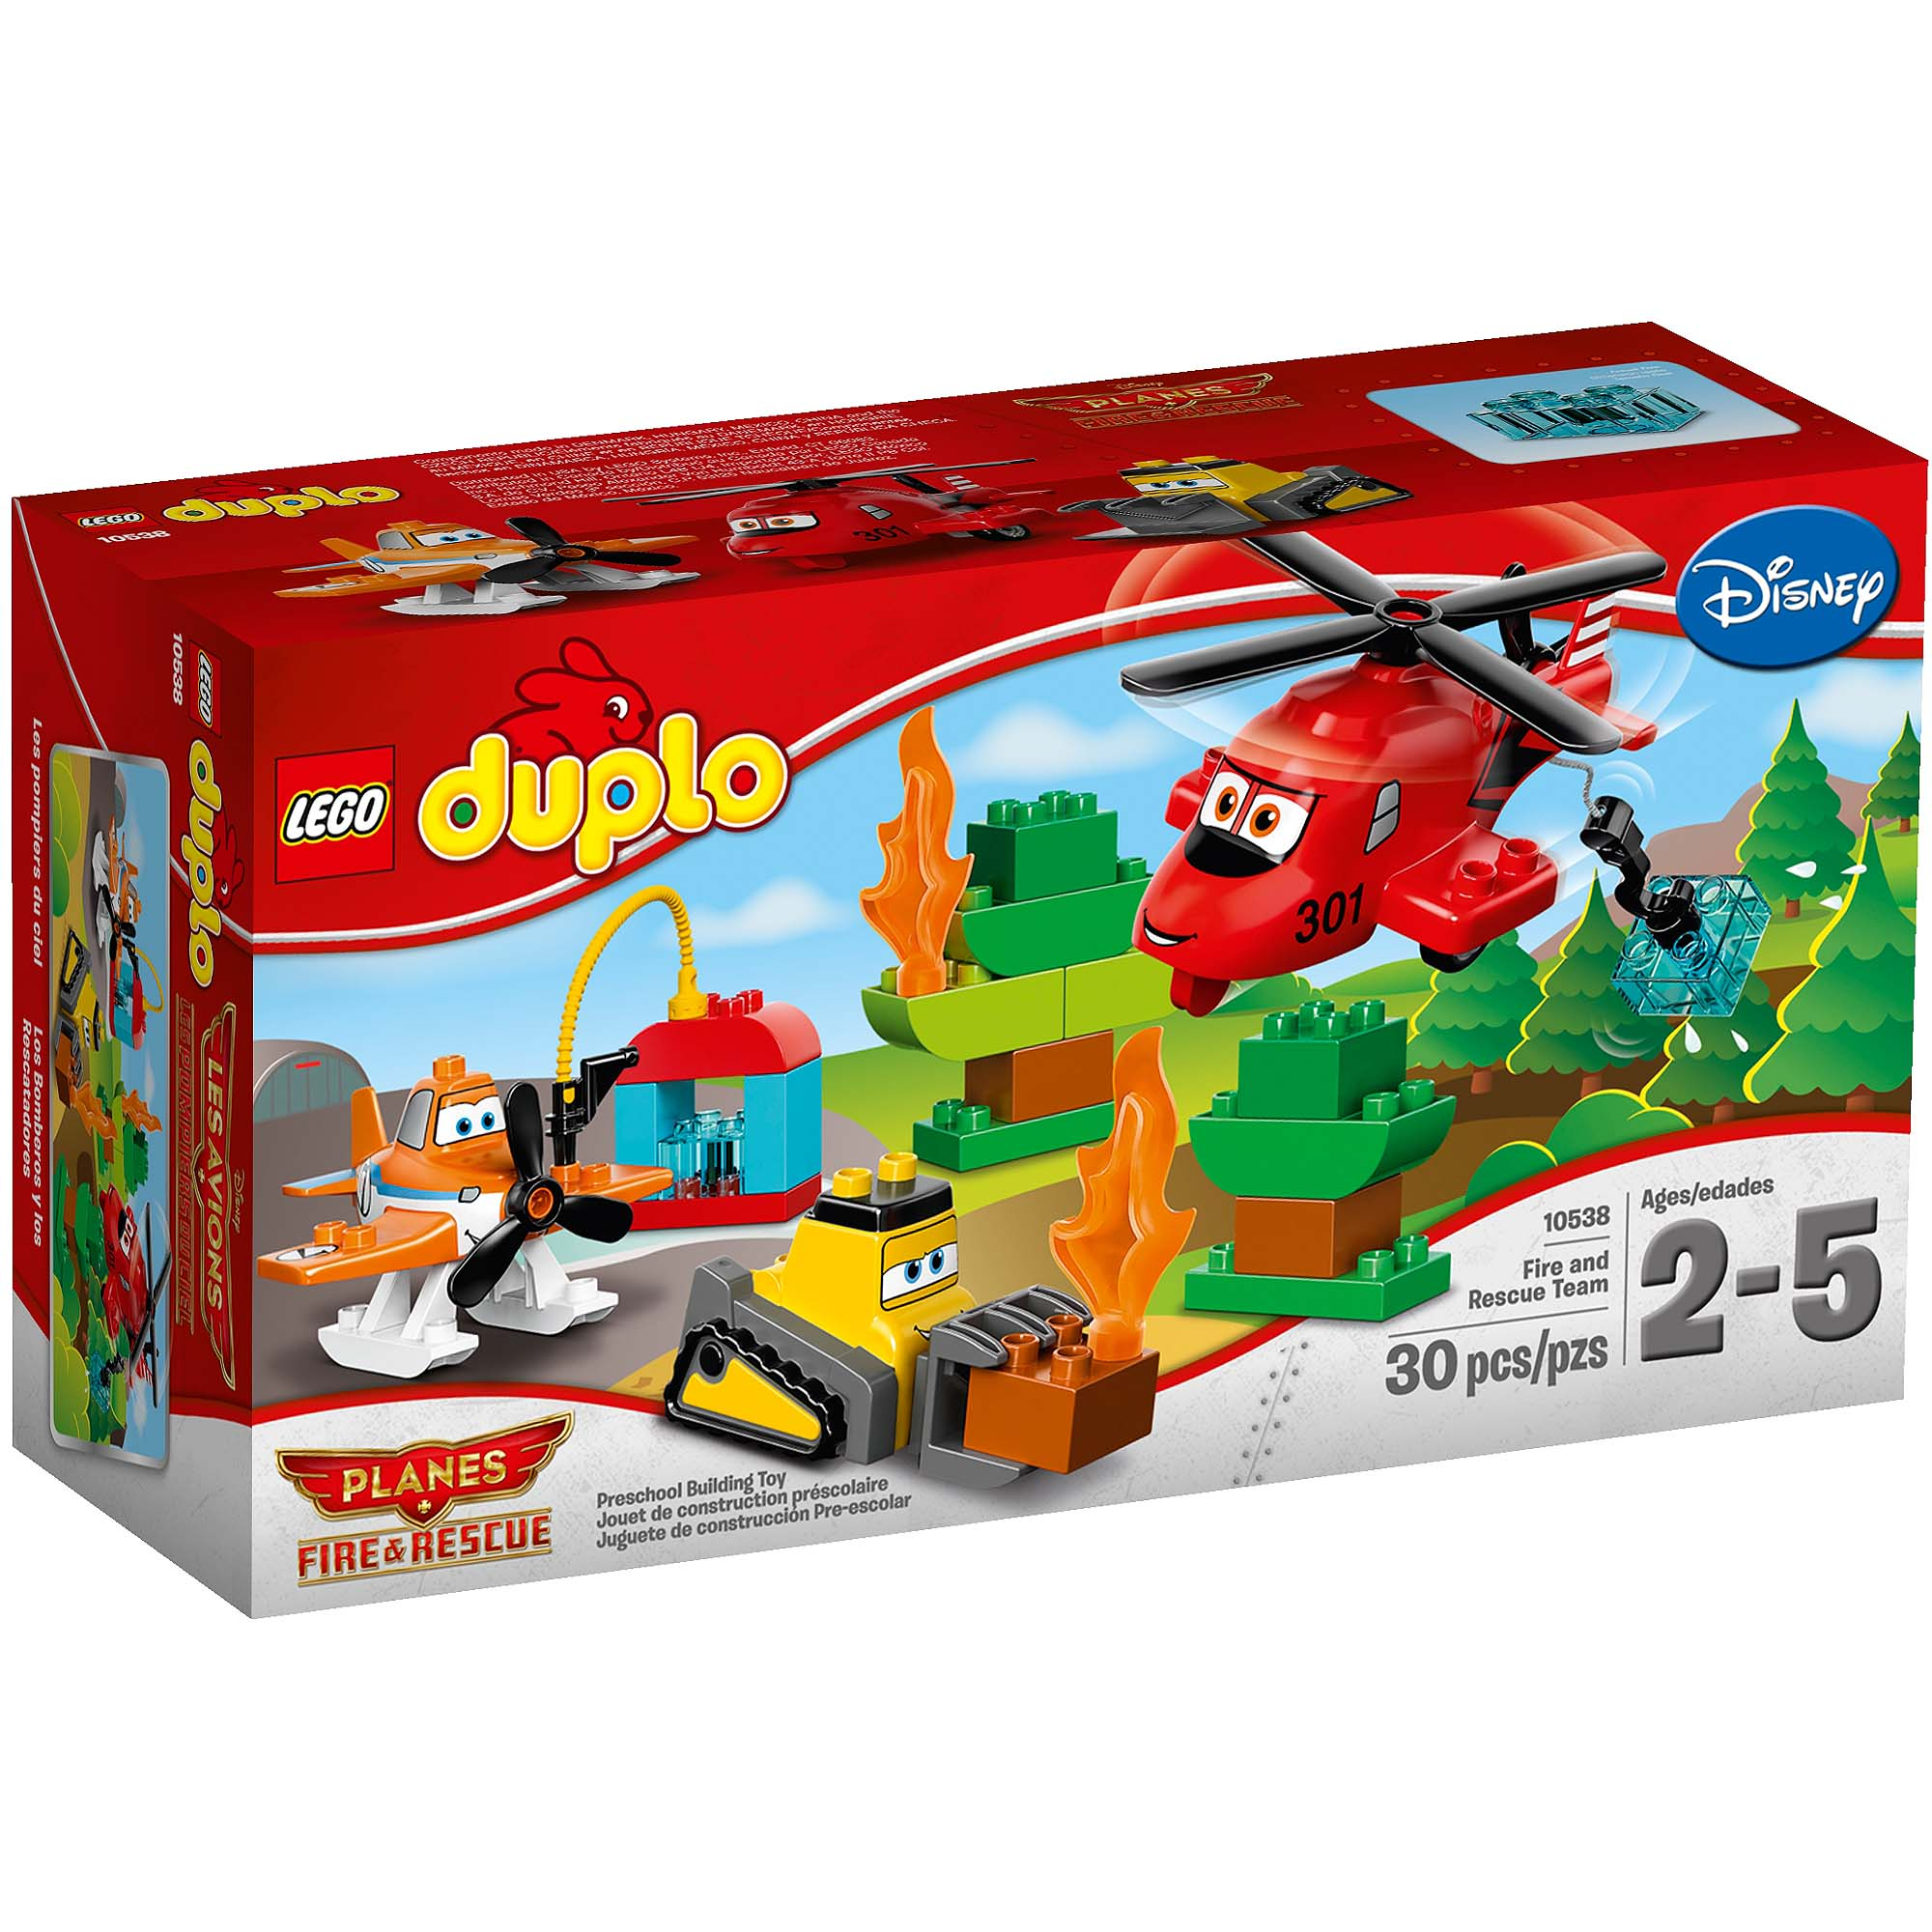 LEGO DUPLO Planes Fire and Rescue Team